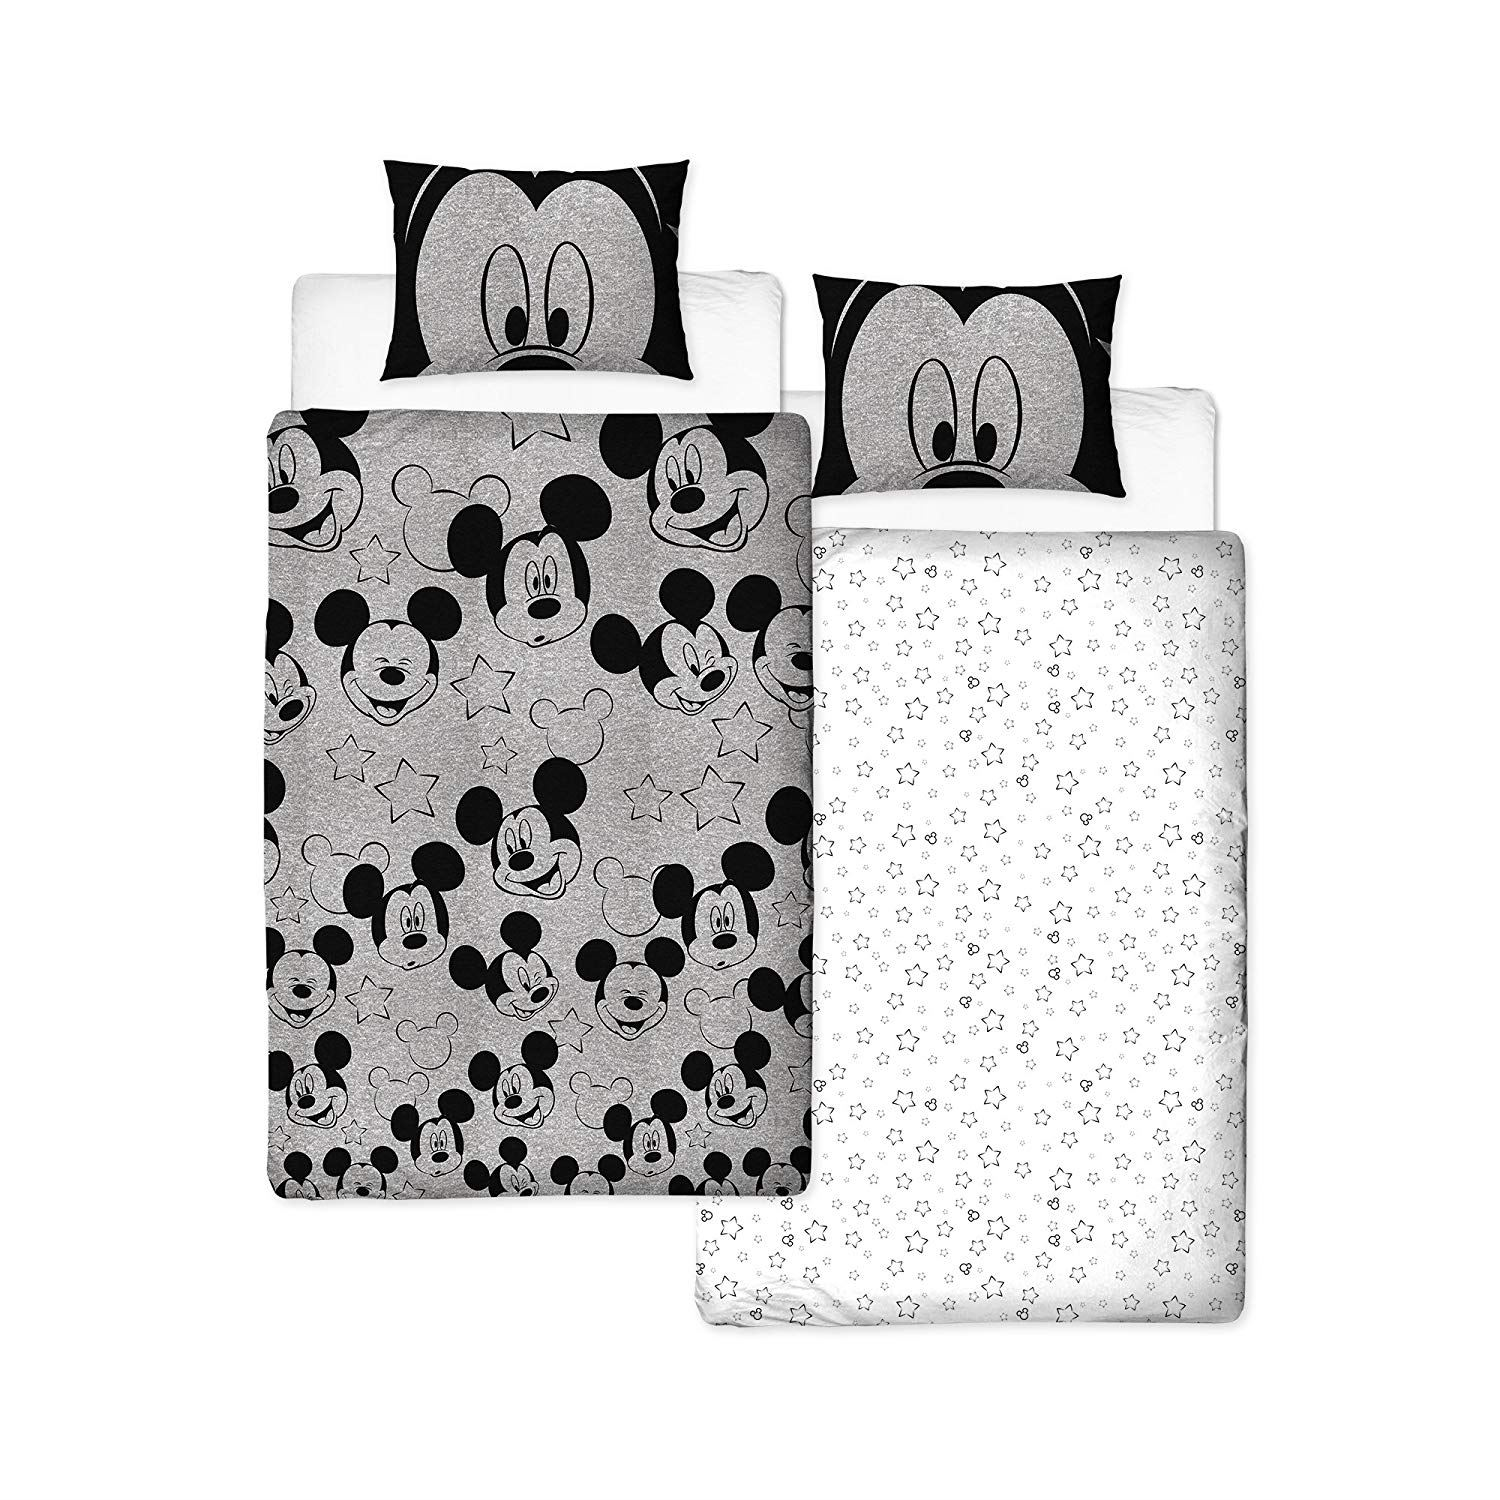 Disney-Mickey-Minnie-mouse-fundas-nordicas-SINGLE-doble-Ropa-De-Cama-Reversible miniatura 11